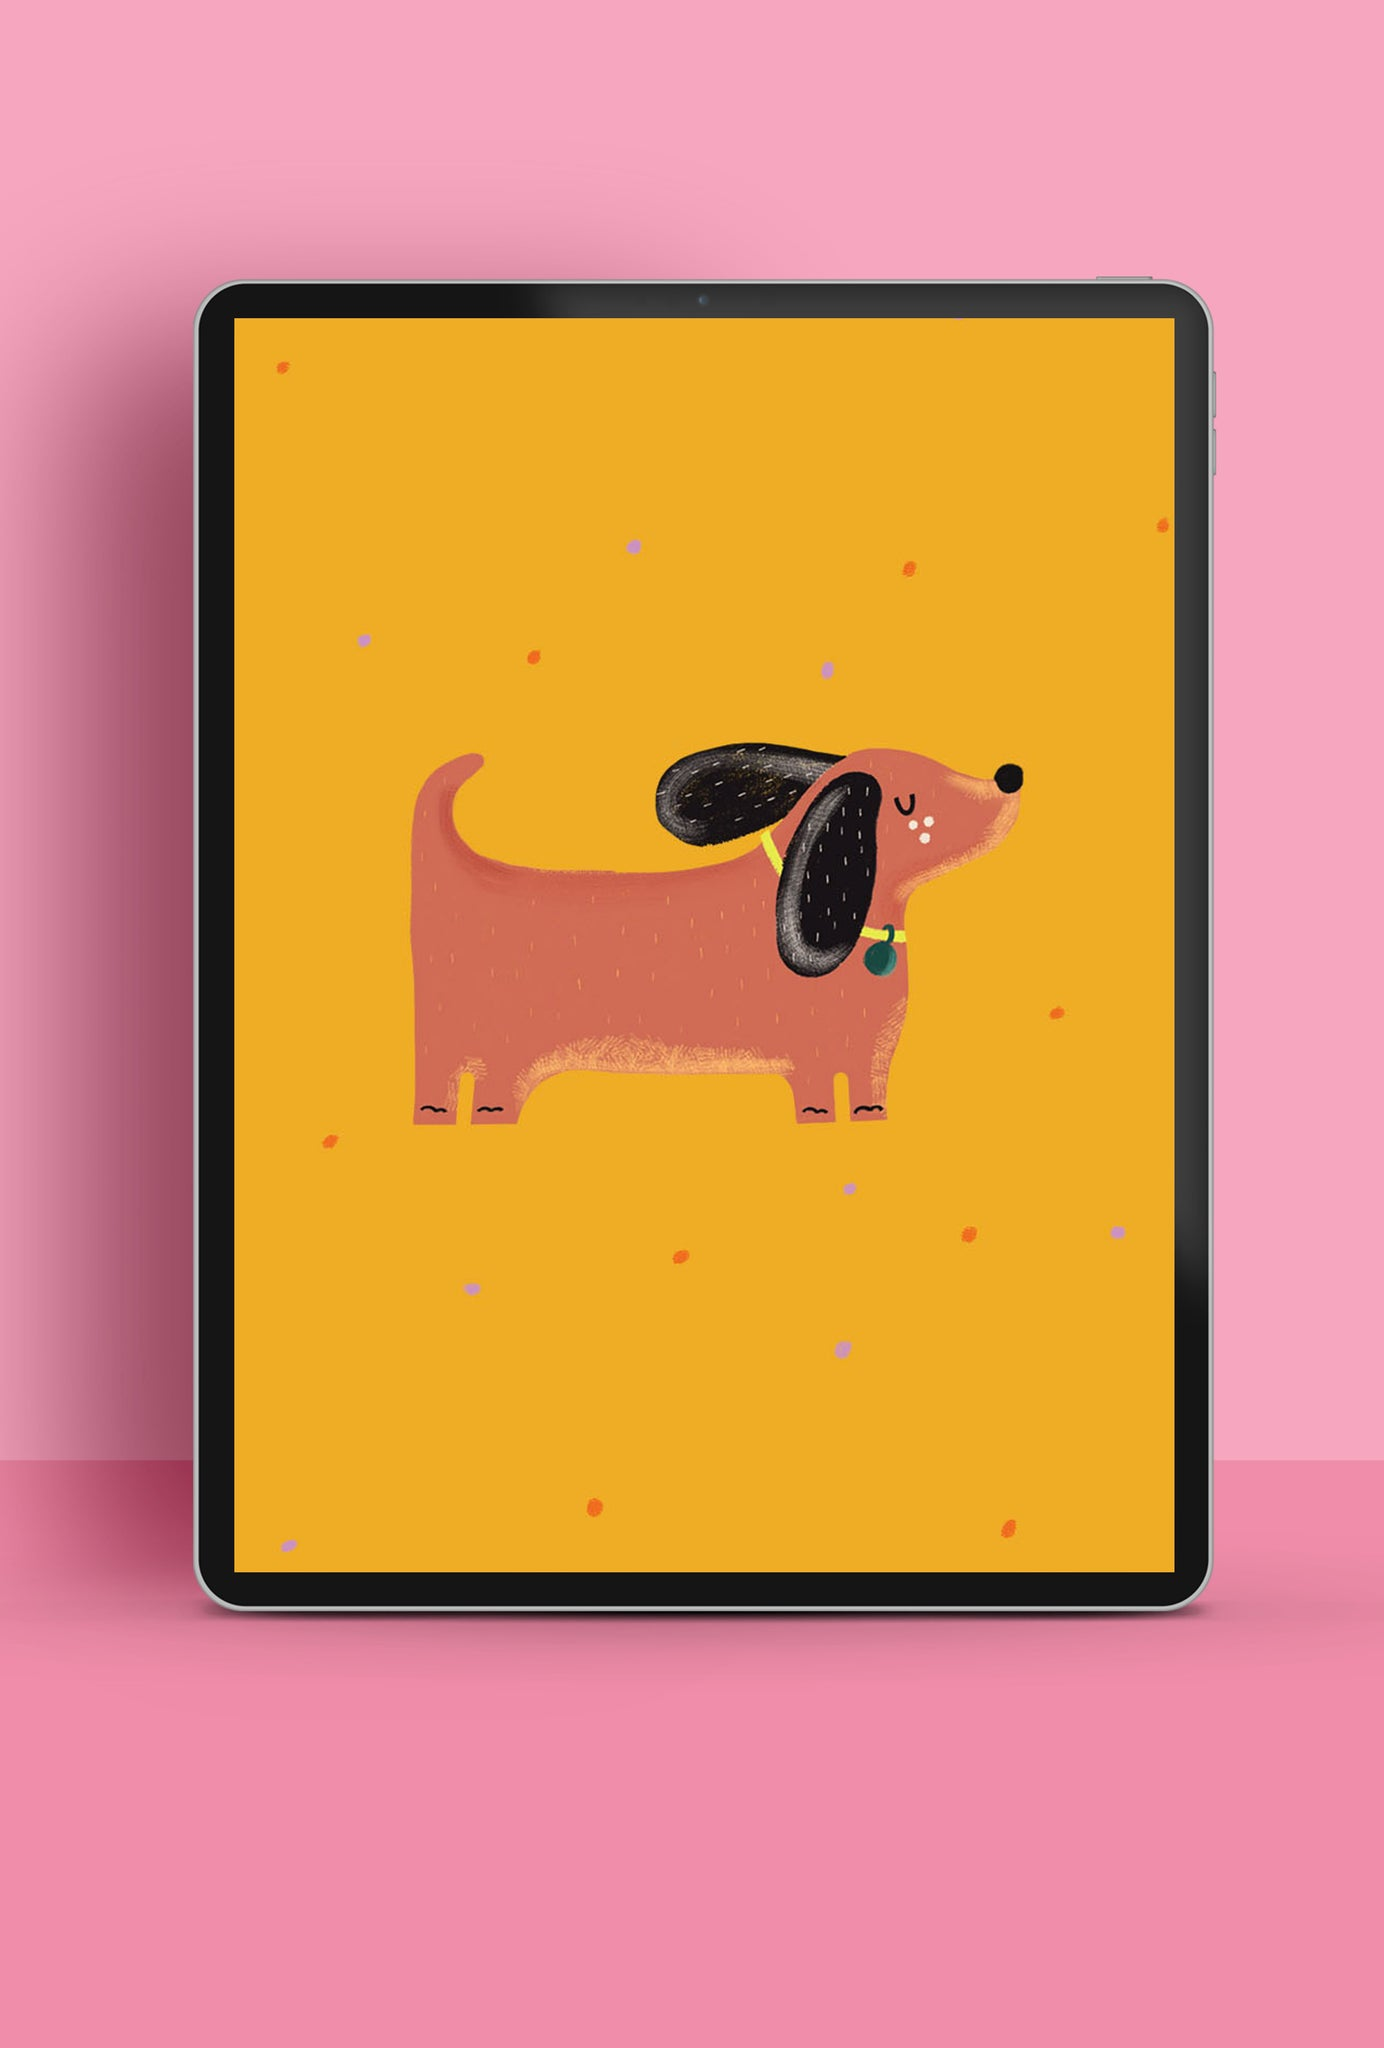 Cute and colourful illustrated sausage dog, free HD wallpaper for tablet | Raspberry Blossom